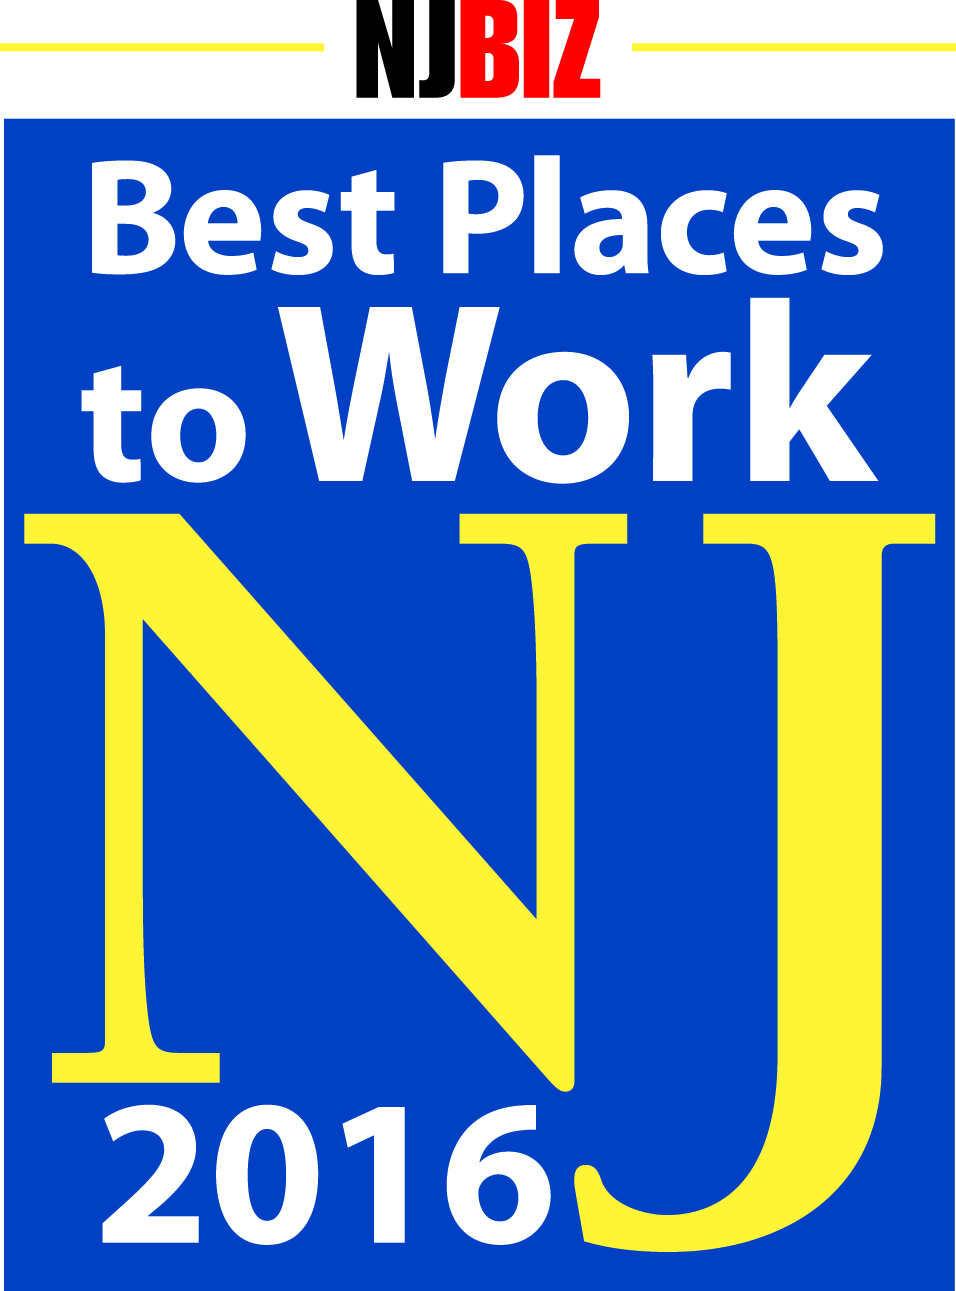 best places to work in nj 2016 sbs group